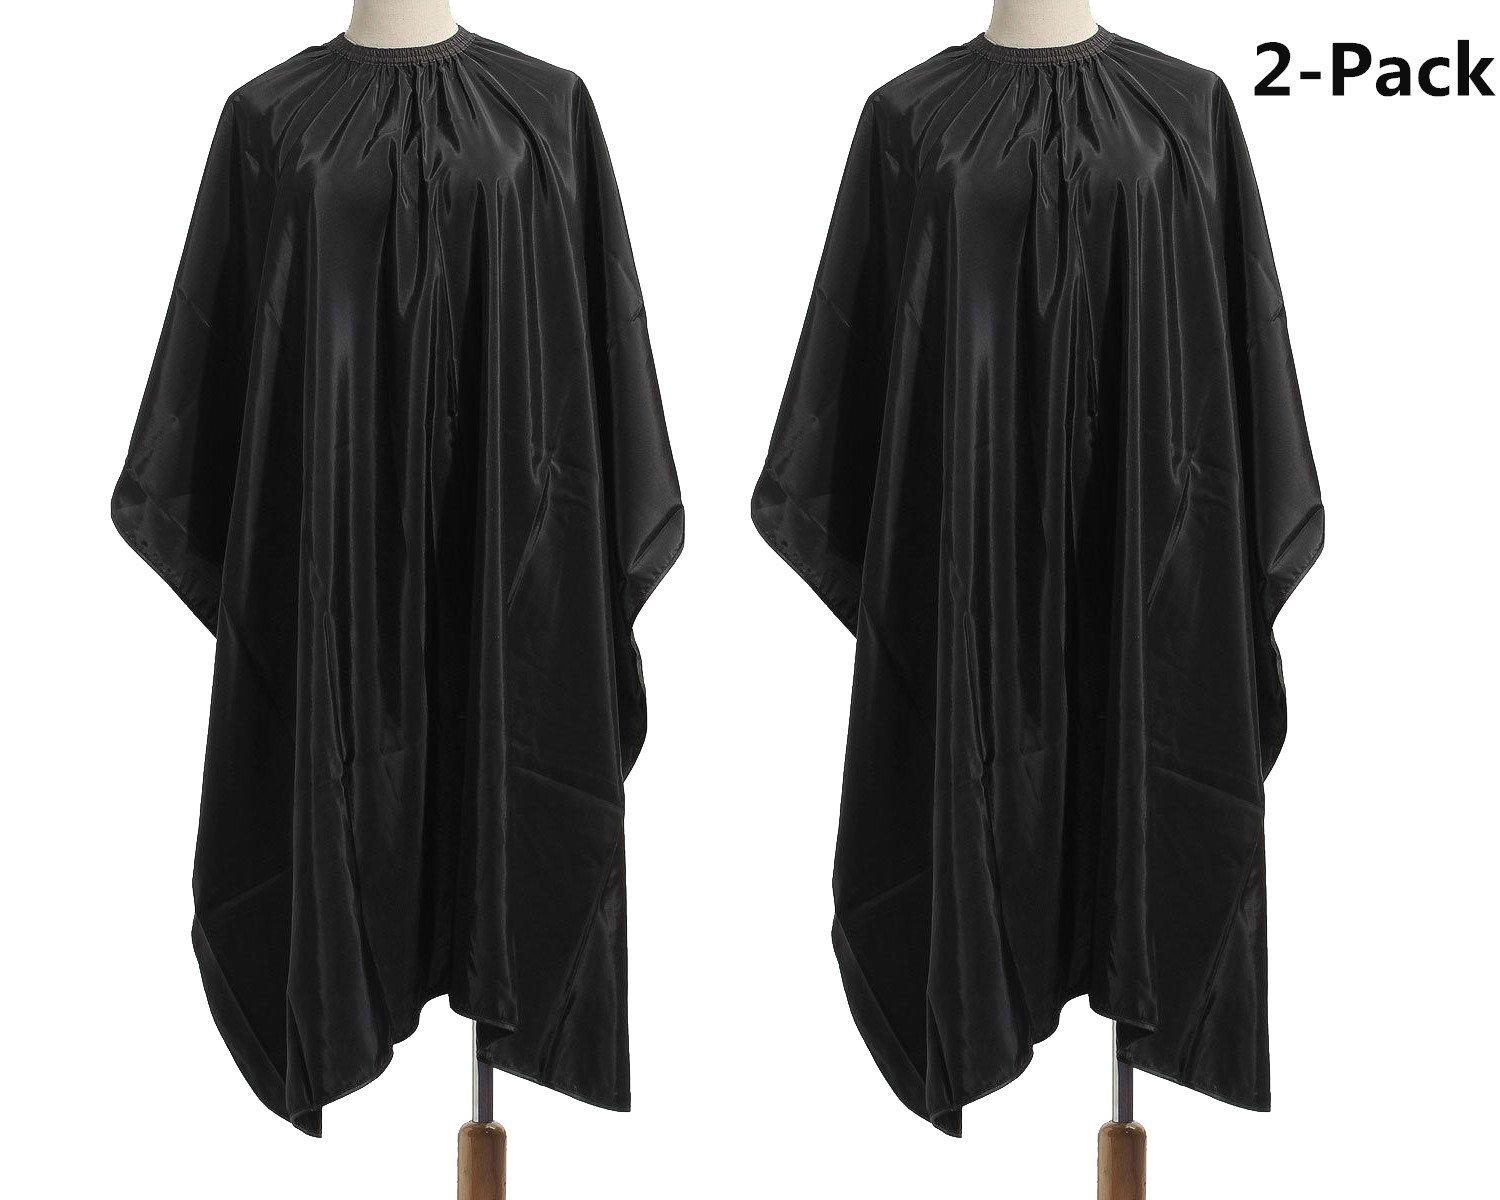 TraderPlus 2 Pack Nylon Salon Hair Cutting Cape Barber Gown Hairdressing Hairdressers Apron Black